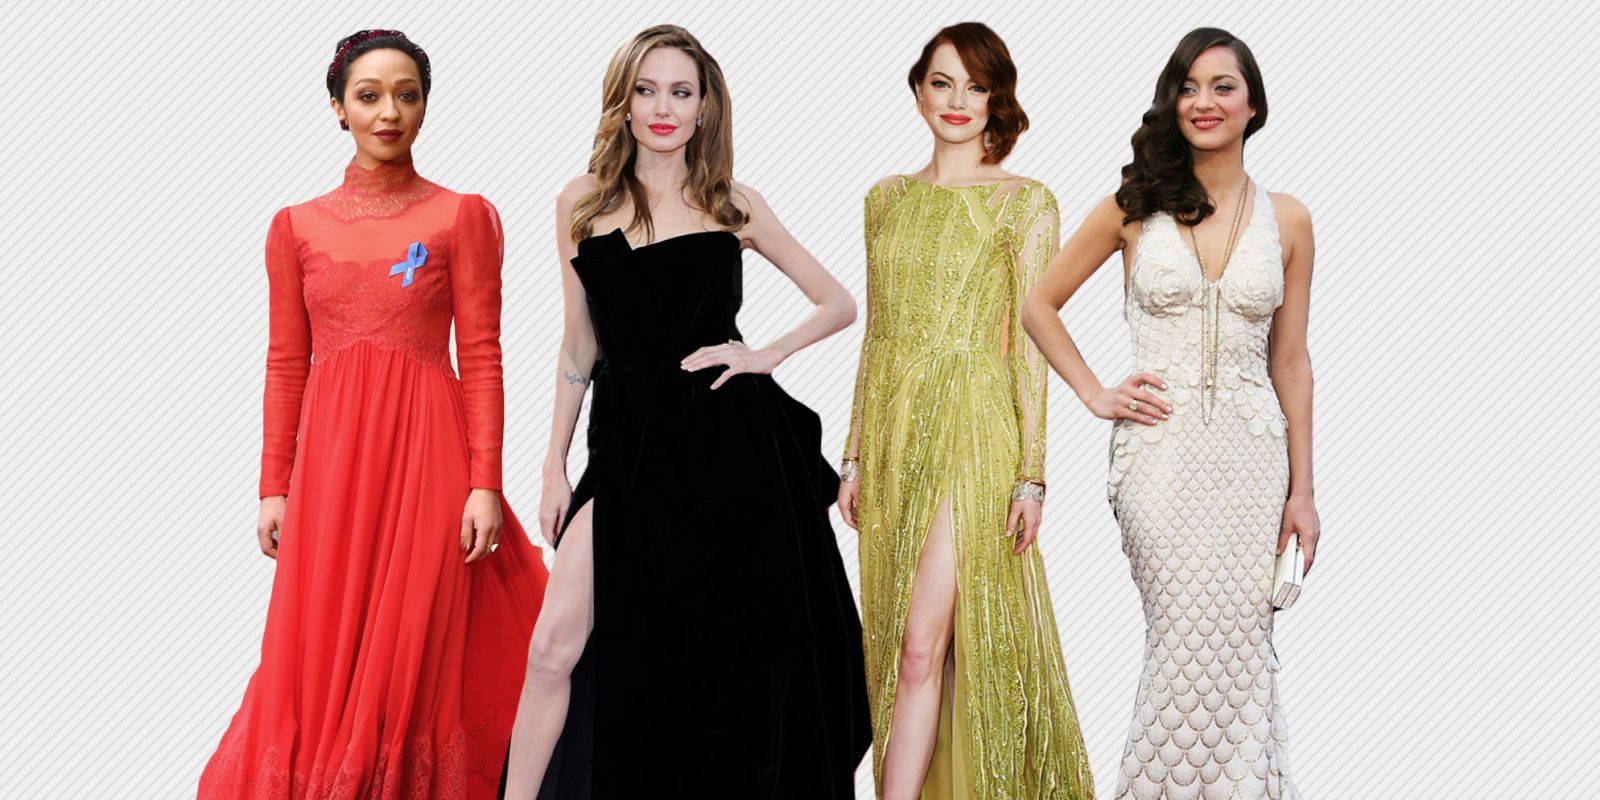 53 Most Iconic Oscar Red Carpet Dresses Of All Time